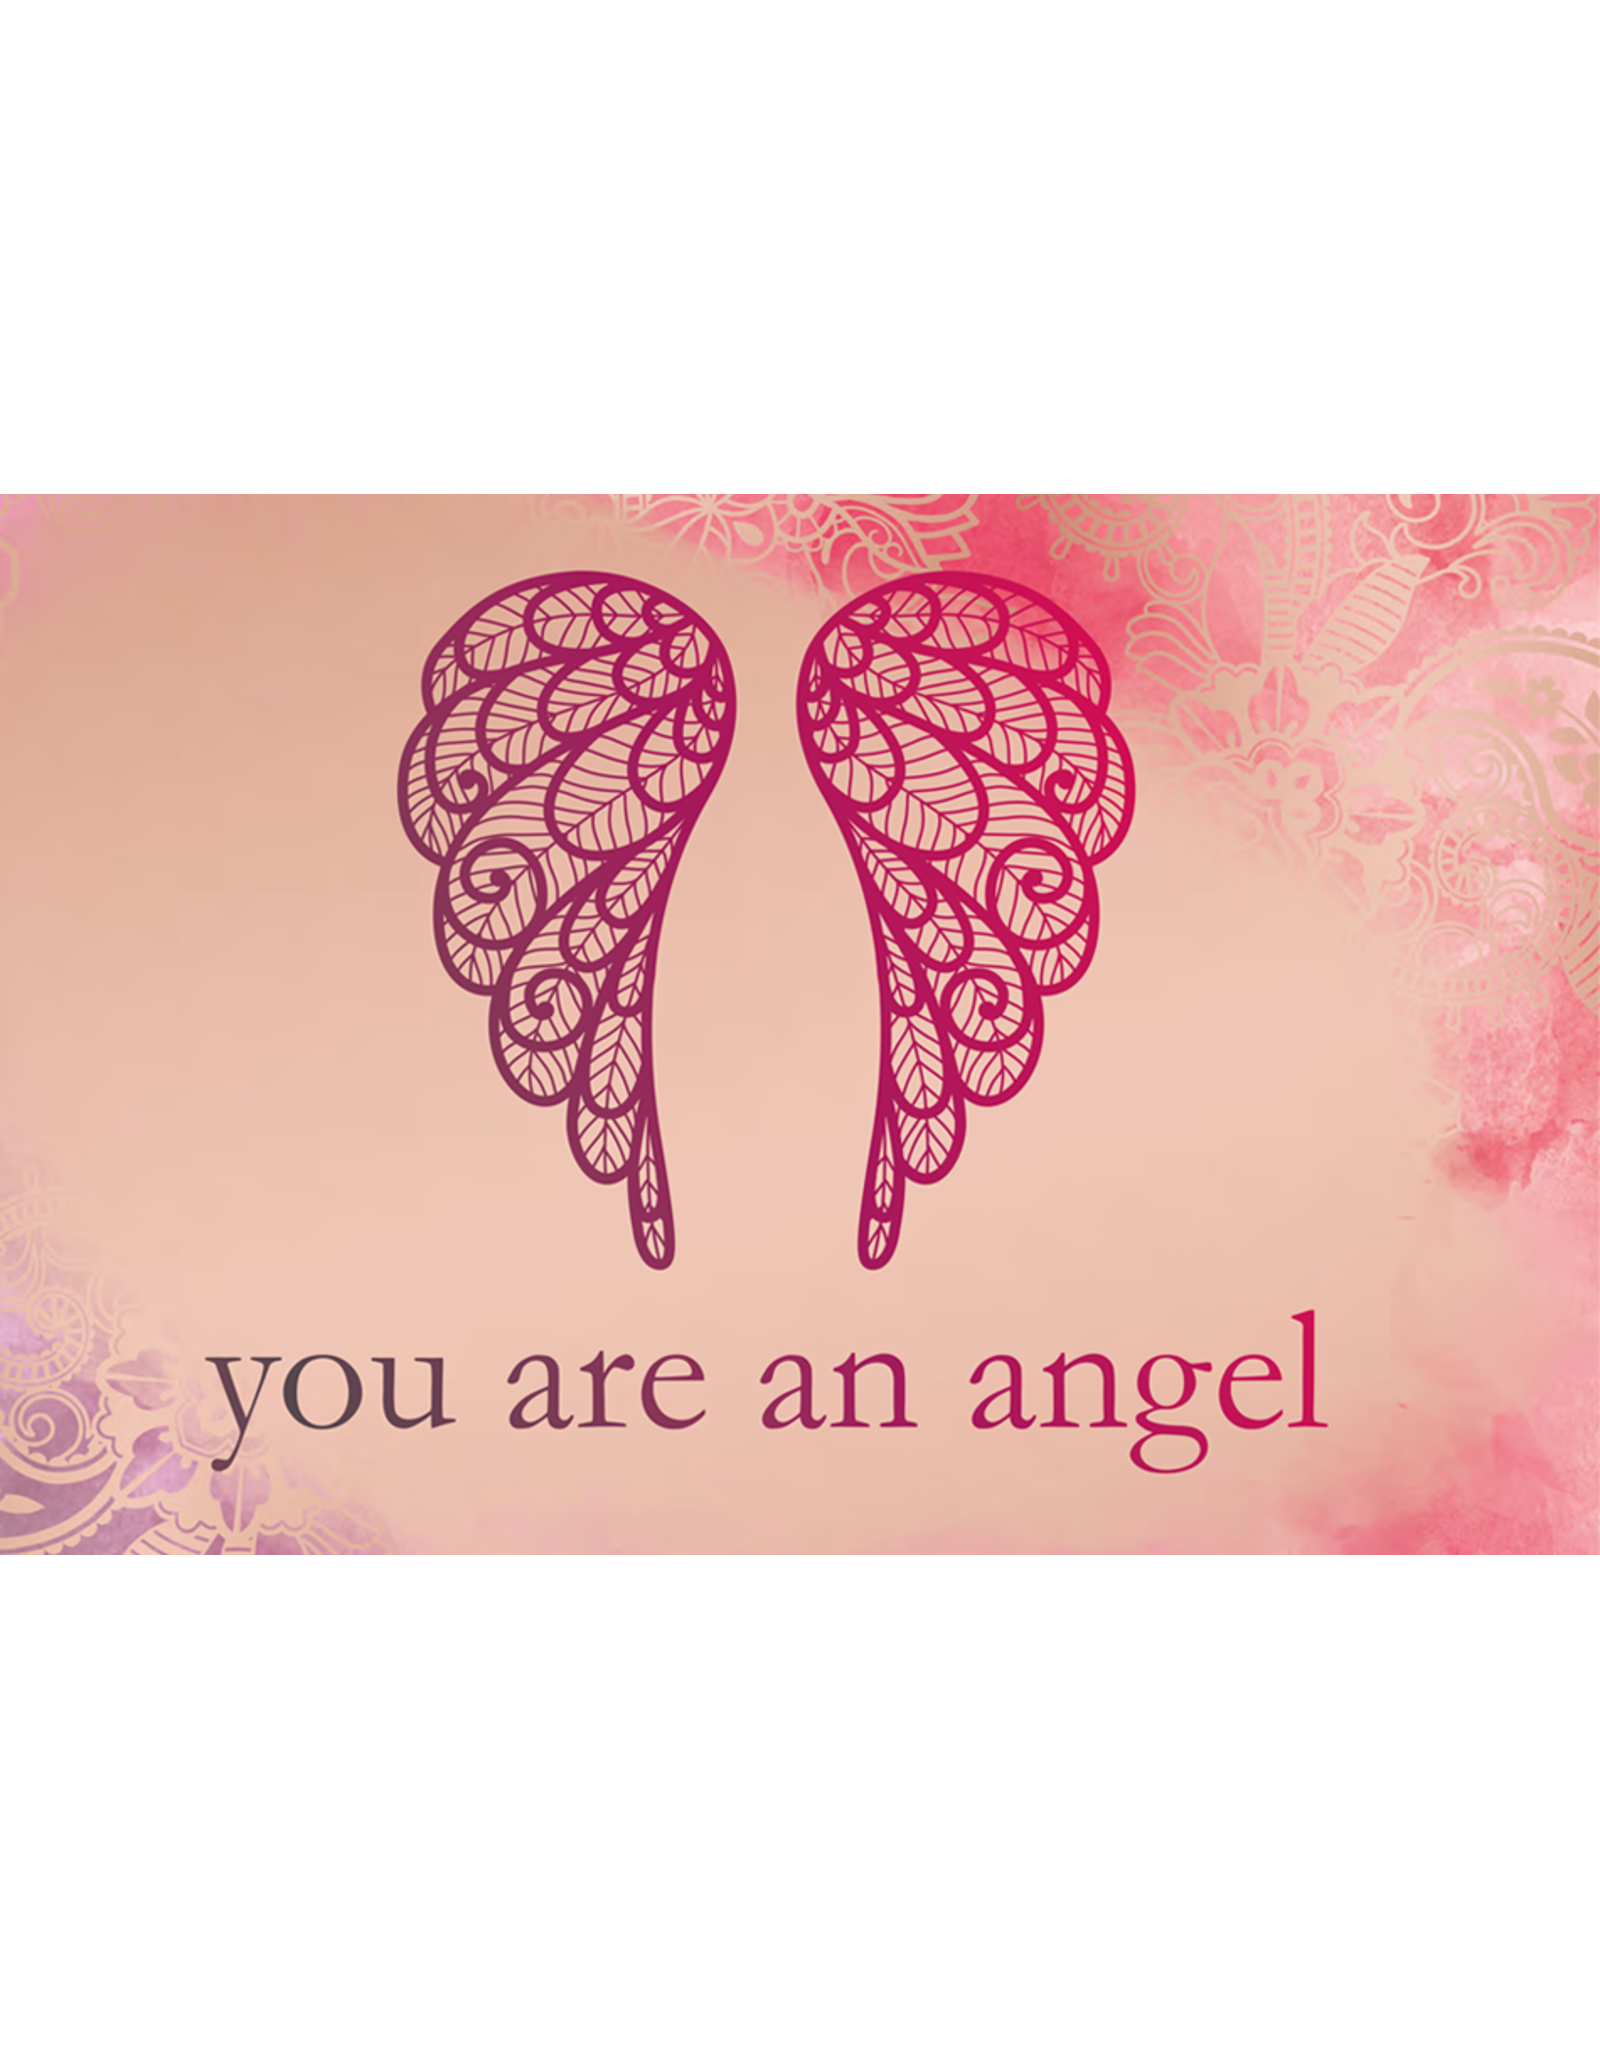 You are an angel Engel pin always believe